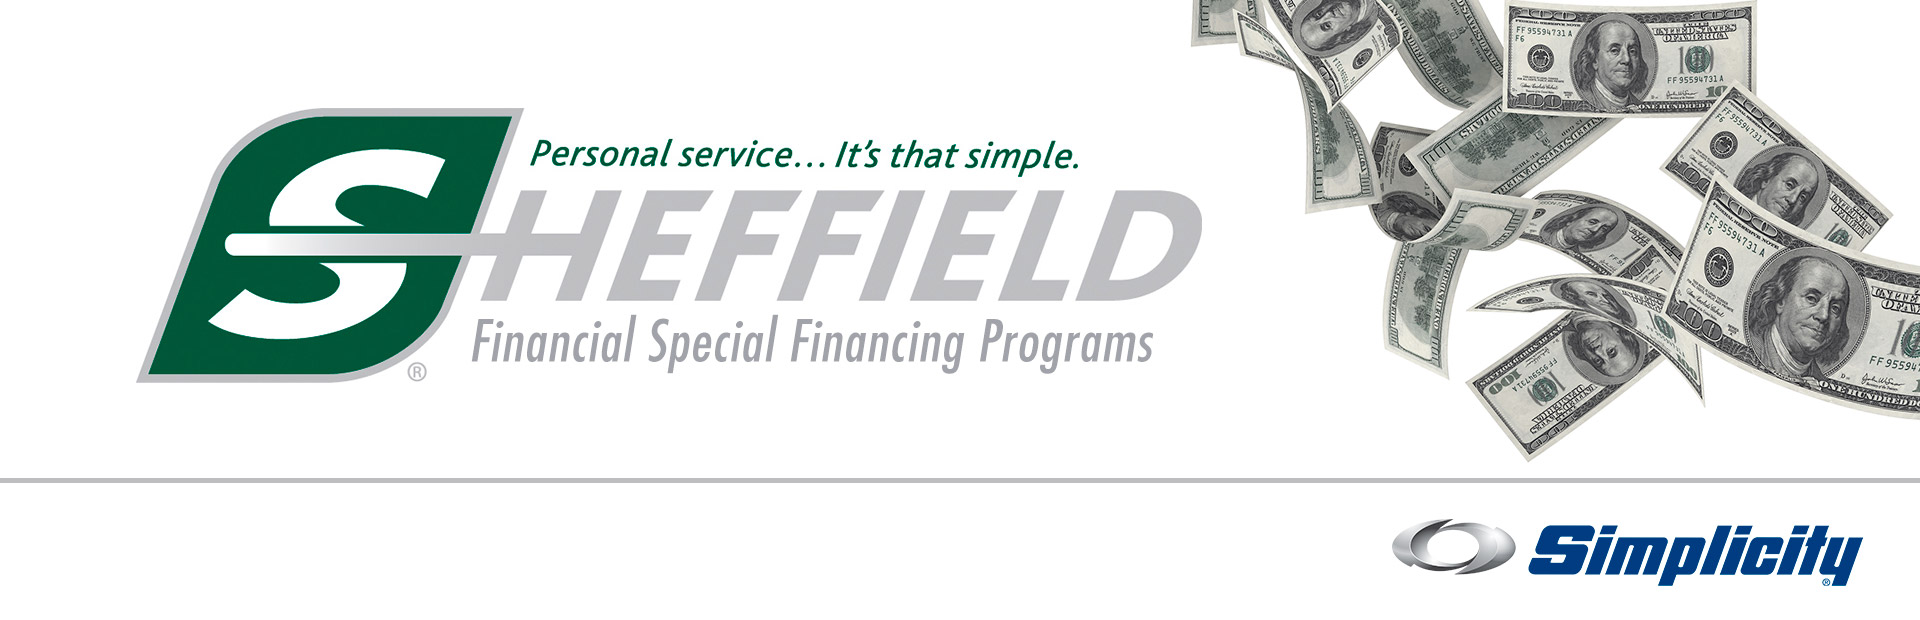 Simplicity: Sheffield Financial Programs